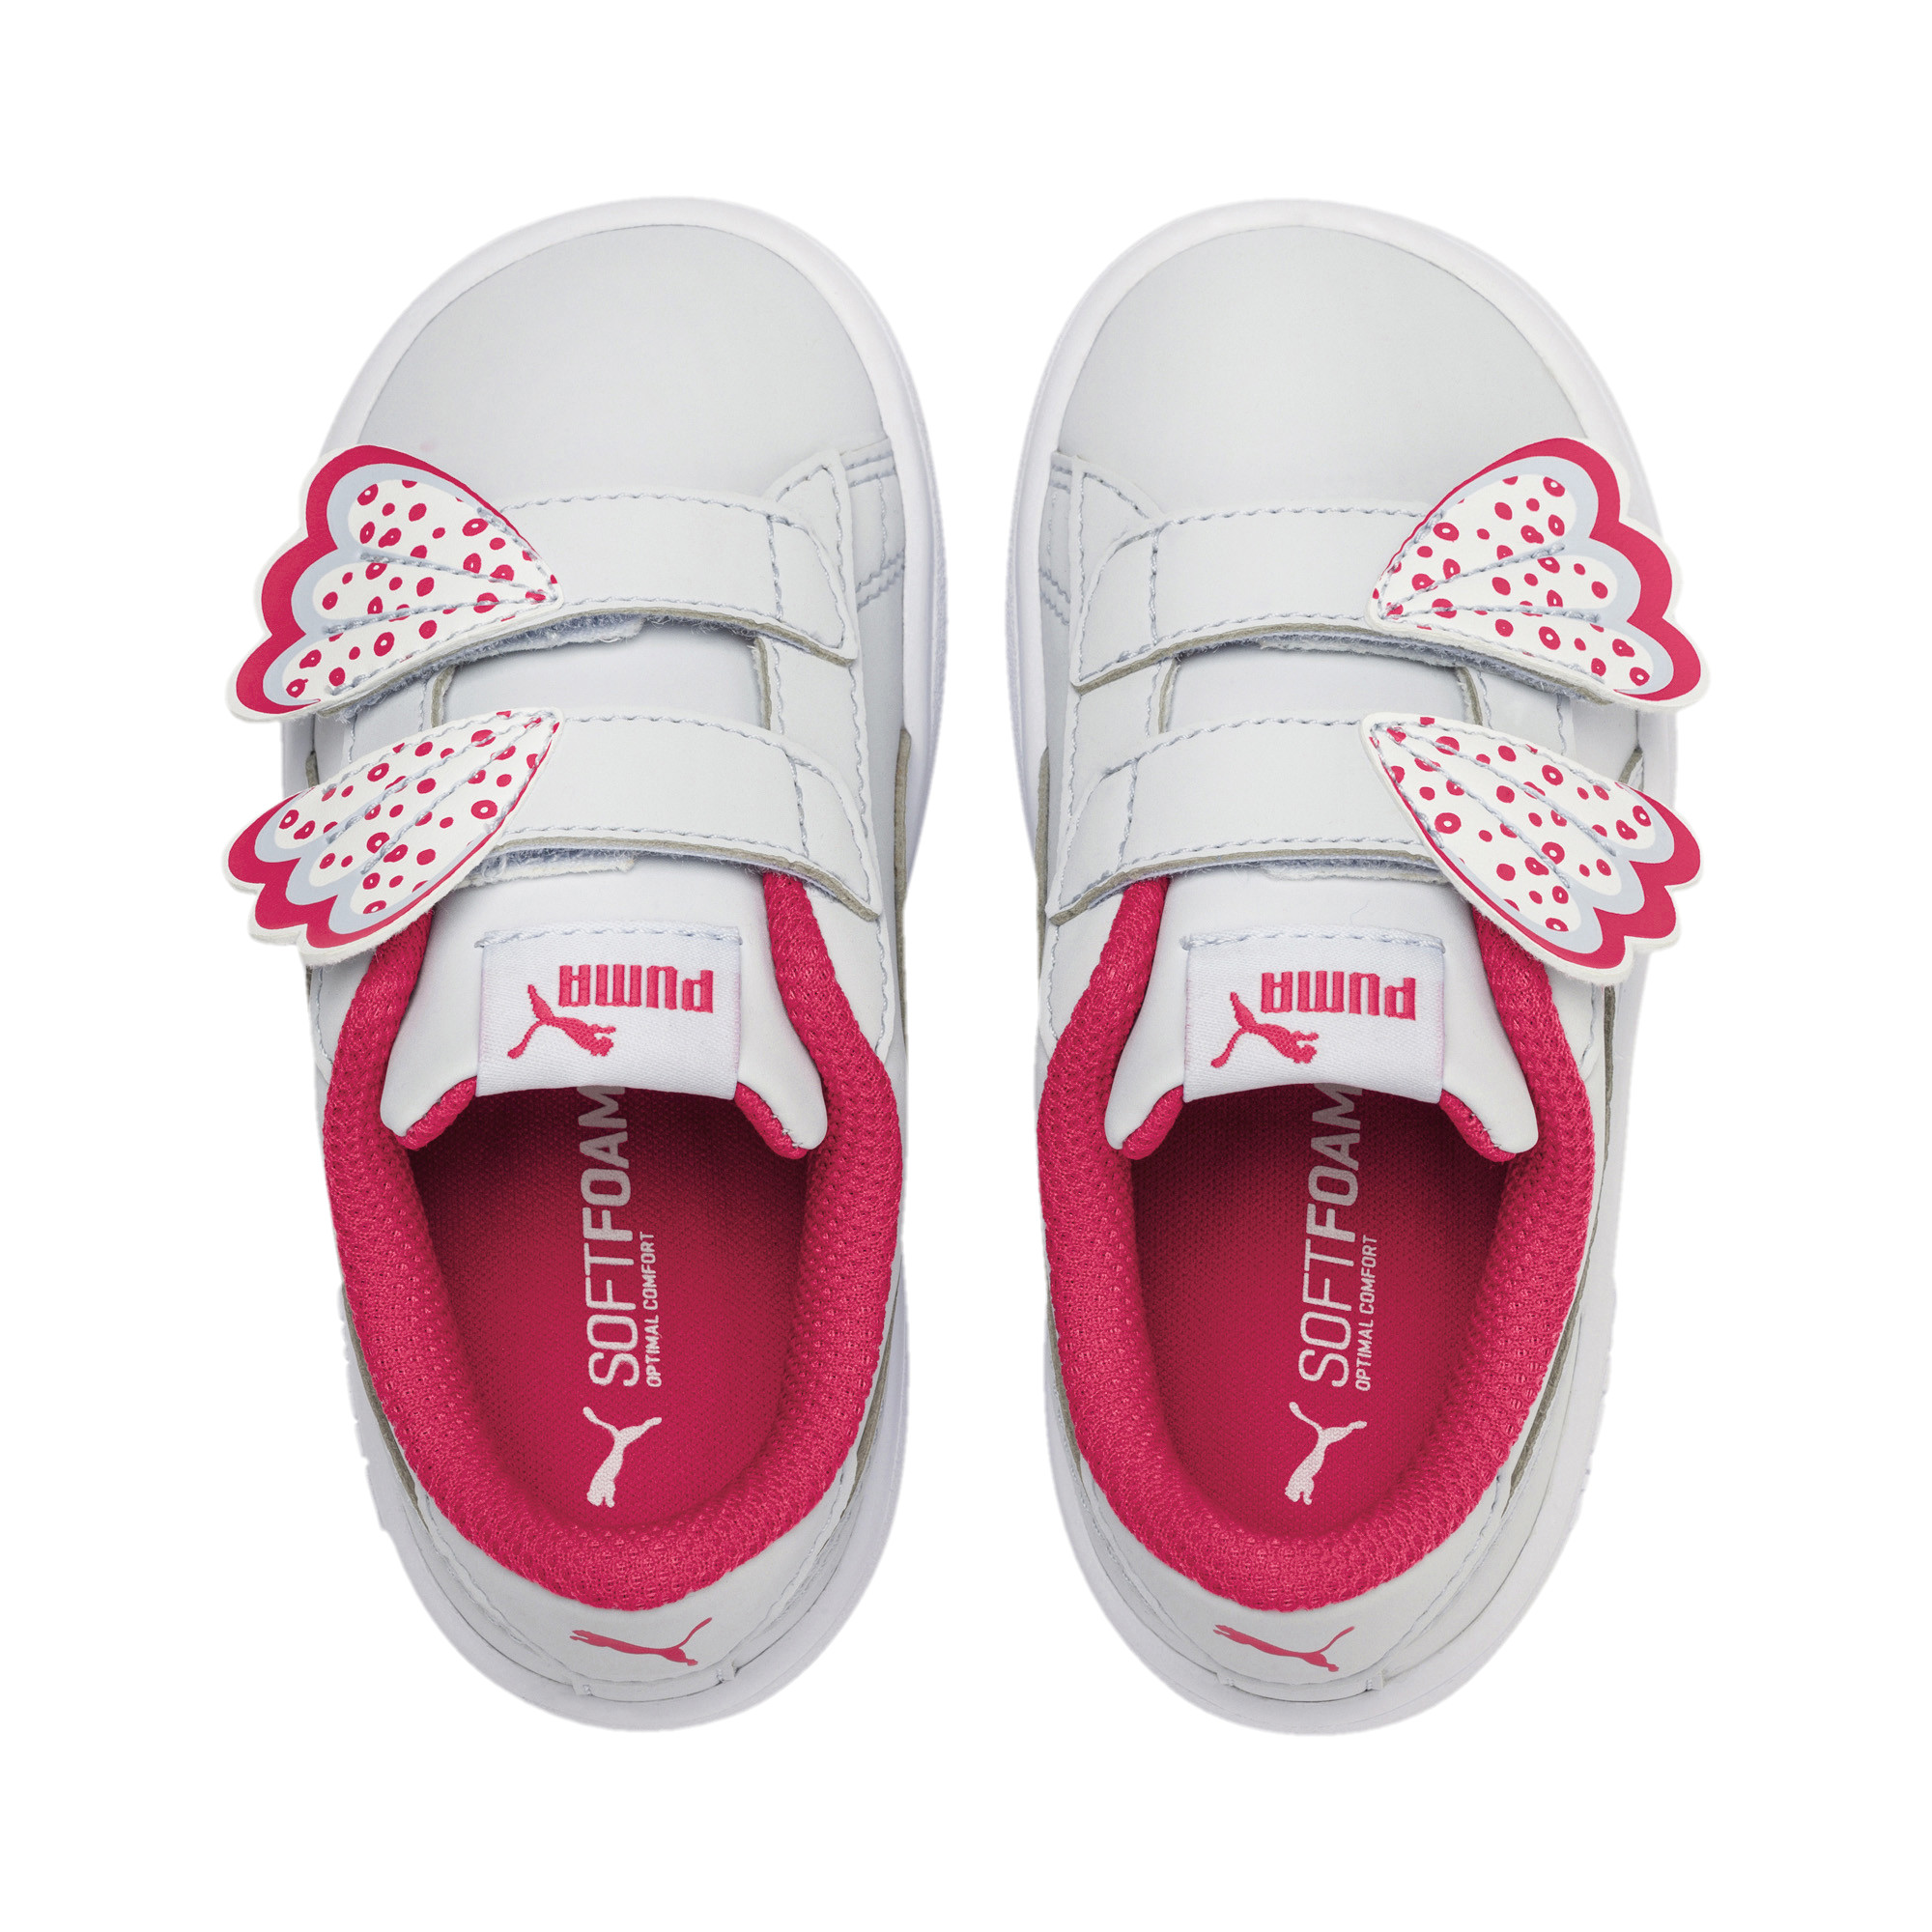 new concept 23f39 66792 Details about PUMA PUMA Smash v2 Butterfly AC Toddler Shoes Girls Shoe Kids